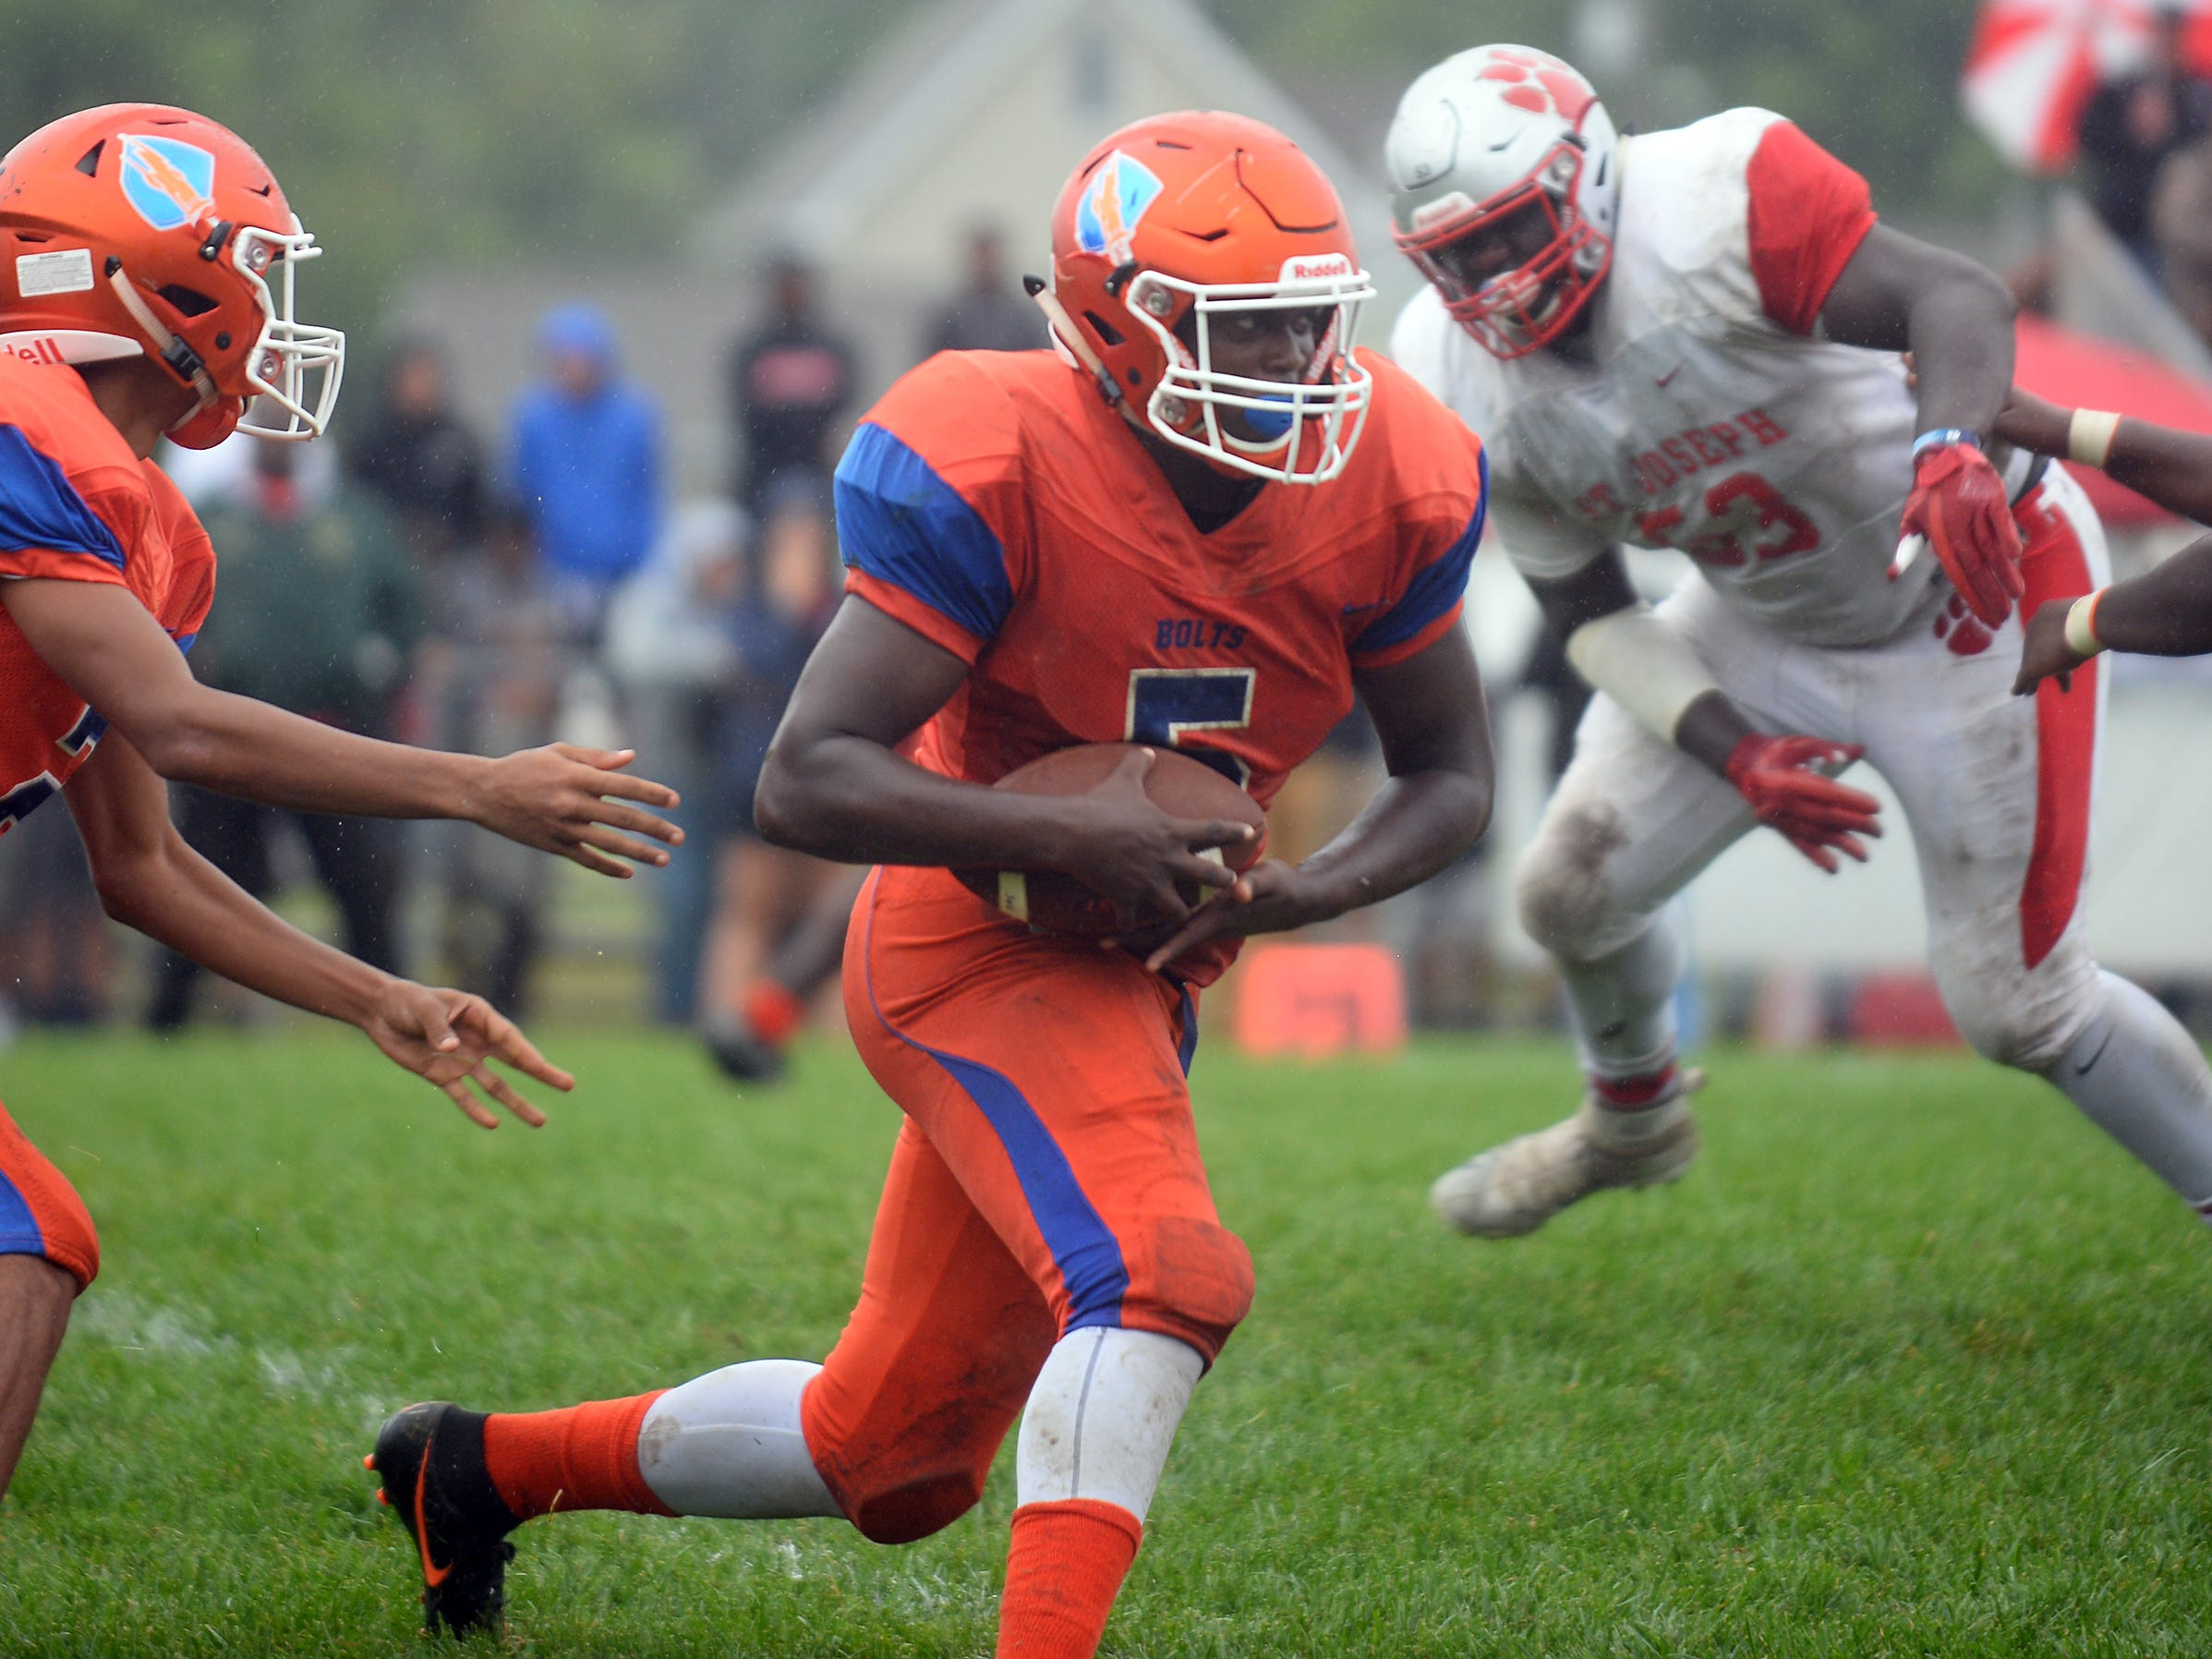 Millville RB, Tex Thompson (5) runs the ball for a short gain against St. Joseph. The visiting Thunderbolts lost the outing to the Wildcats in Hammonton on Saturday, September 8.